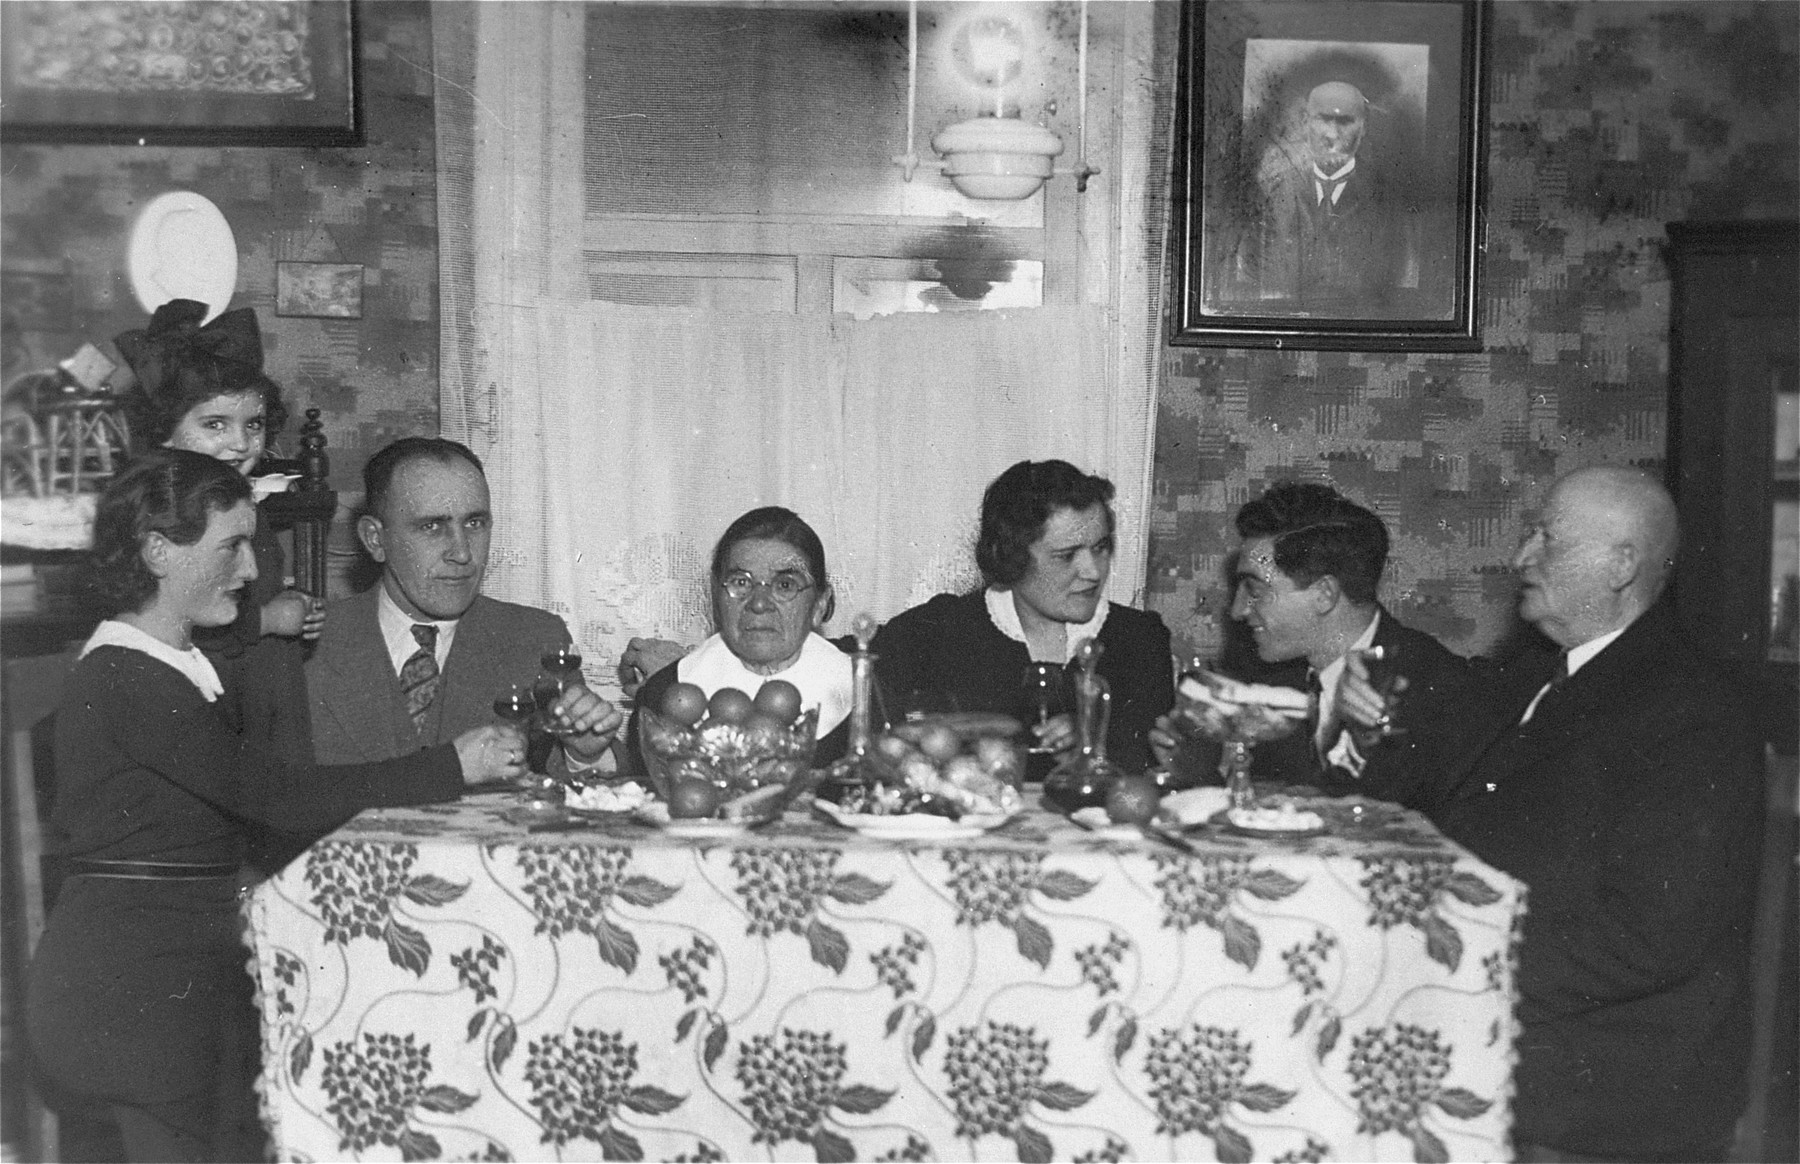 The engaged couple, Eliezer and Chaya Gar, eat at the Gar home in Kron.  Pictured from left to right are: Baila, Chaviva, Jacob, Esther, and Chaya Gar; Eliezer Kaplan, and David Tkatch, a cousin of the Gars.